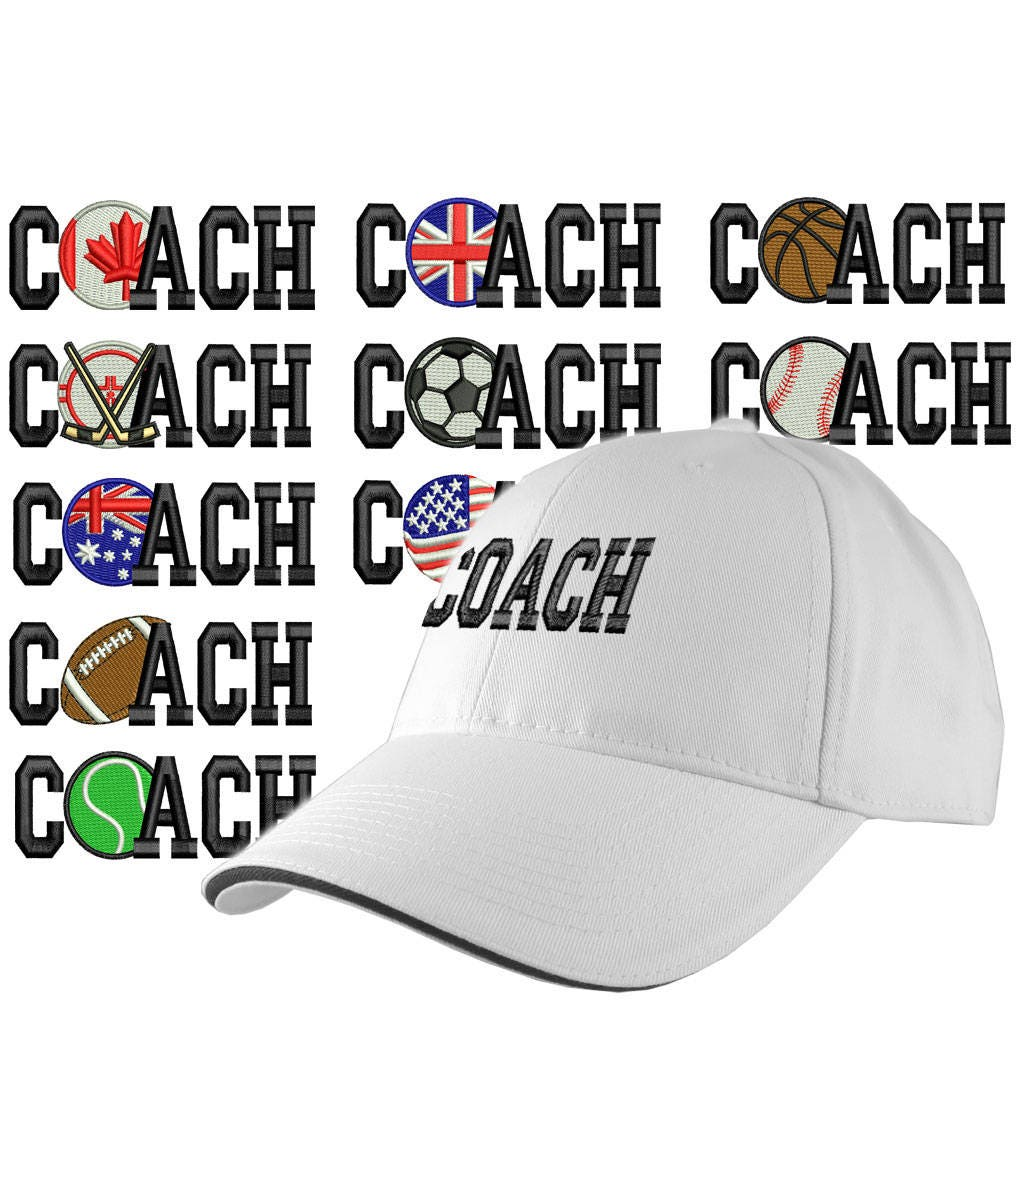 18ae54b90bc Custom Personalized Coach Embroidery on an Adjustable Structured White  Baseball Cap Front Decor Selection with Options for Side and Back